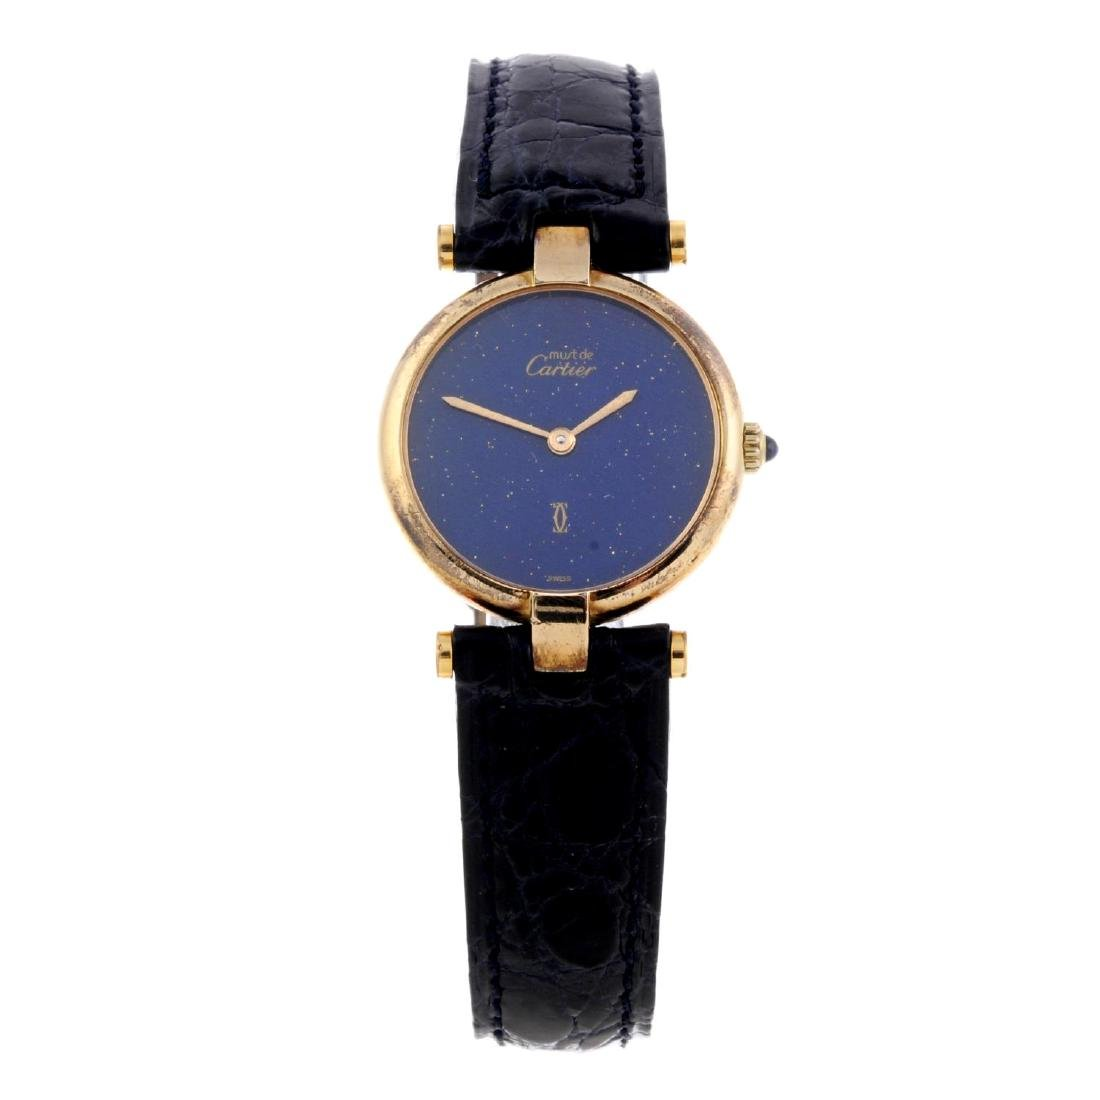 CARTIER - a Must de Cartier wrist watch. Gold plated